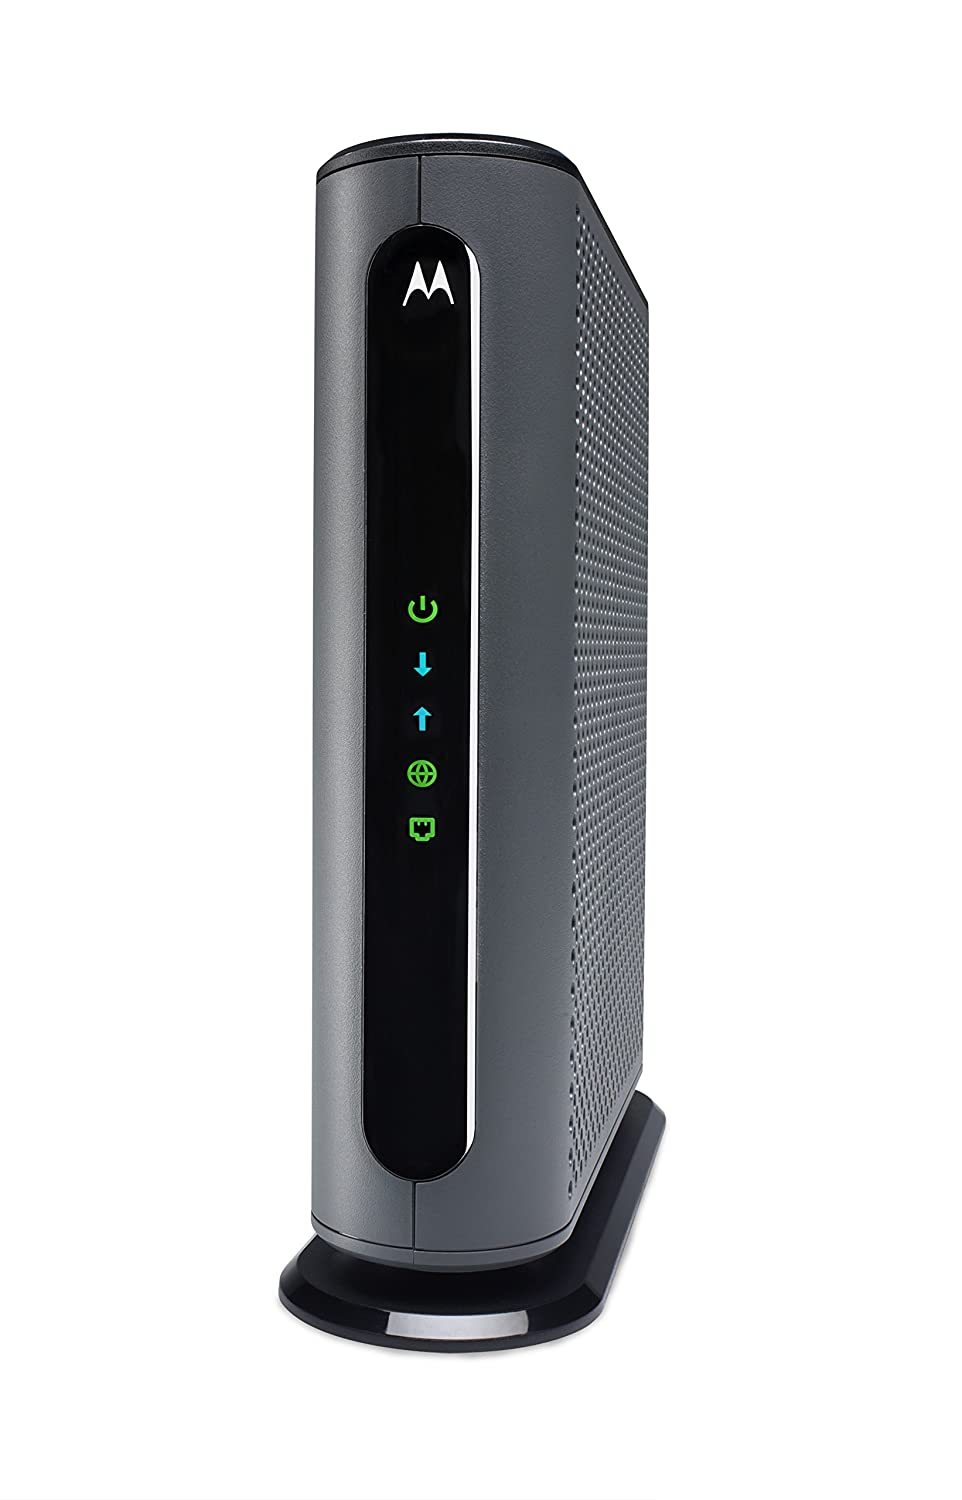 Best Cable Modem 2019 2020 Buyer S Guide